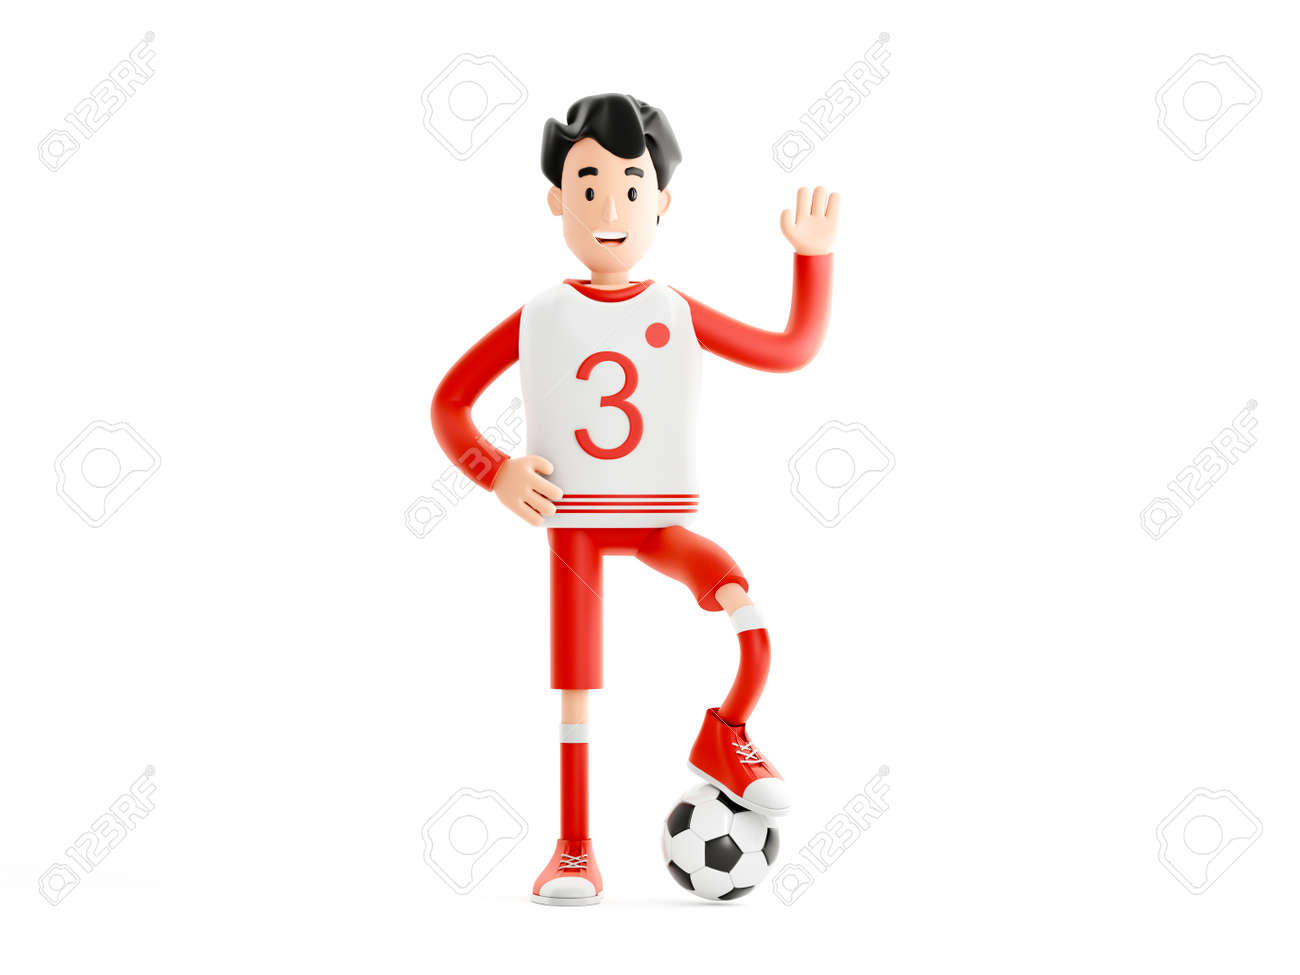 Cartoon character football or soccer player with a ball isolated on white background - 171588126